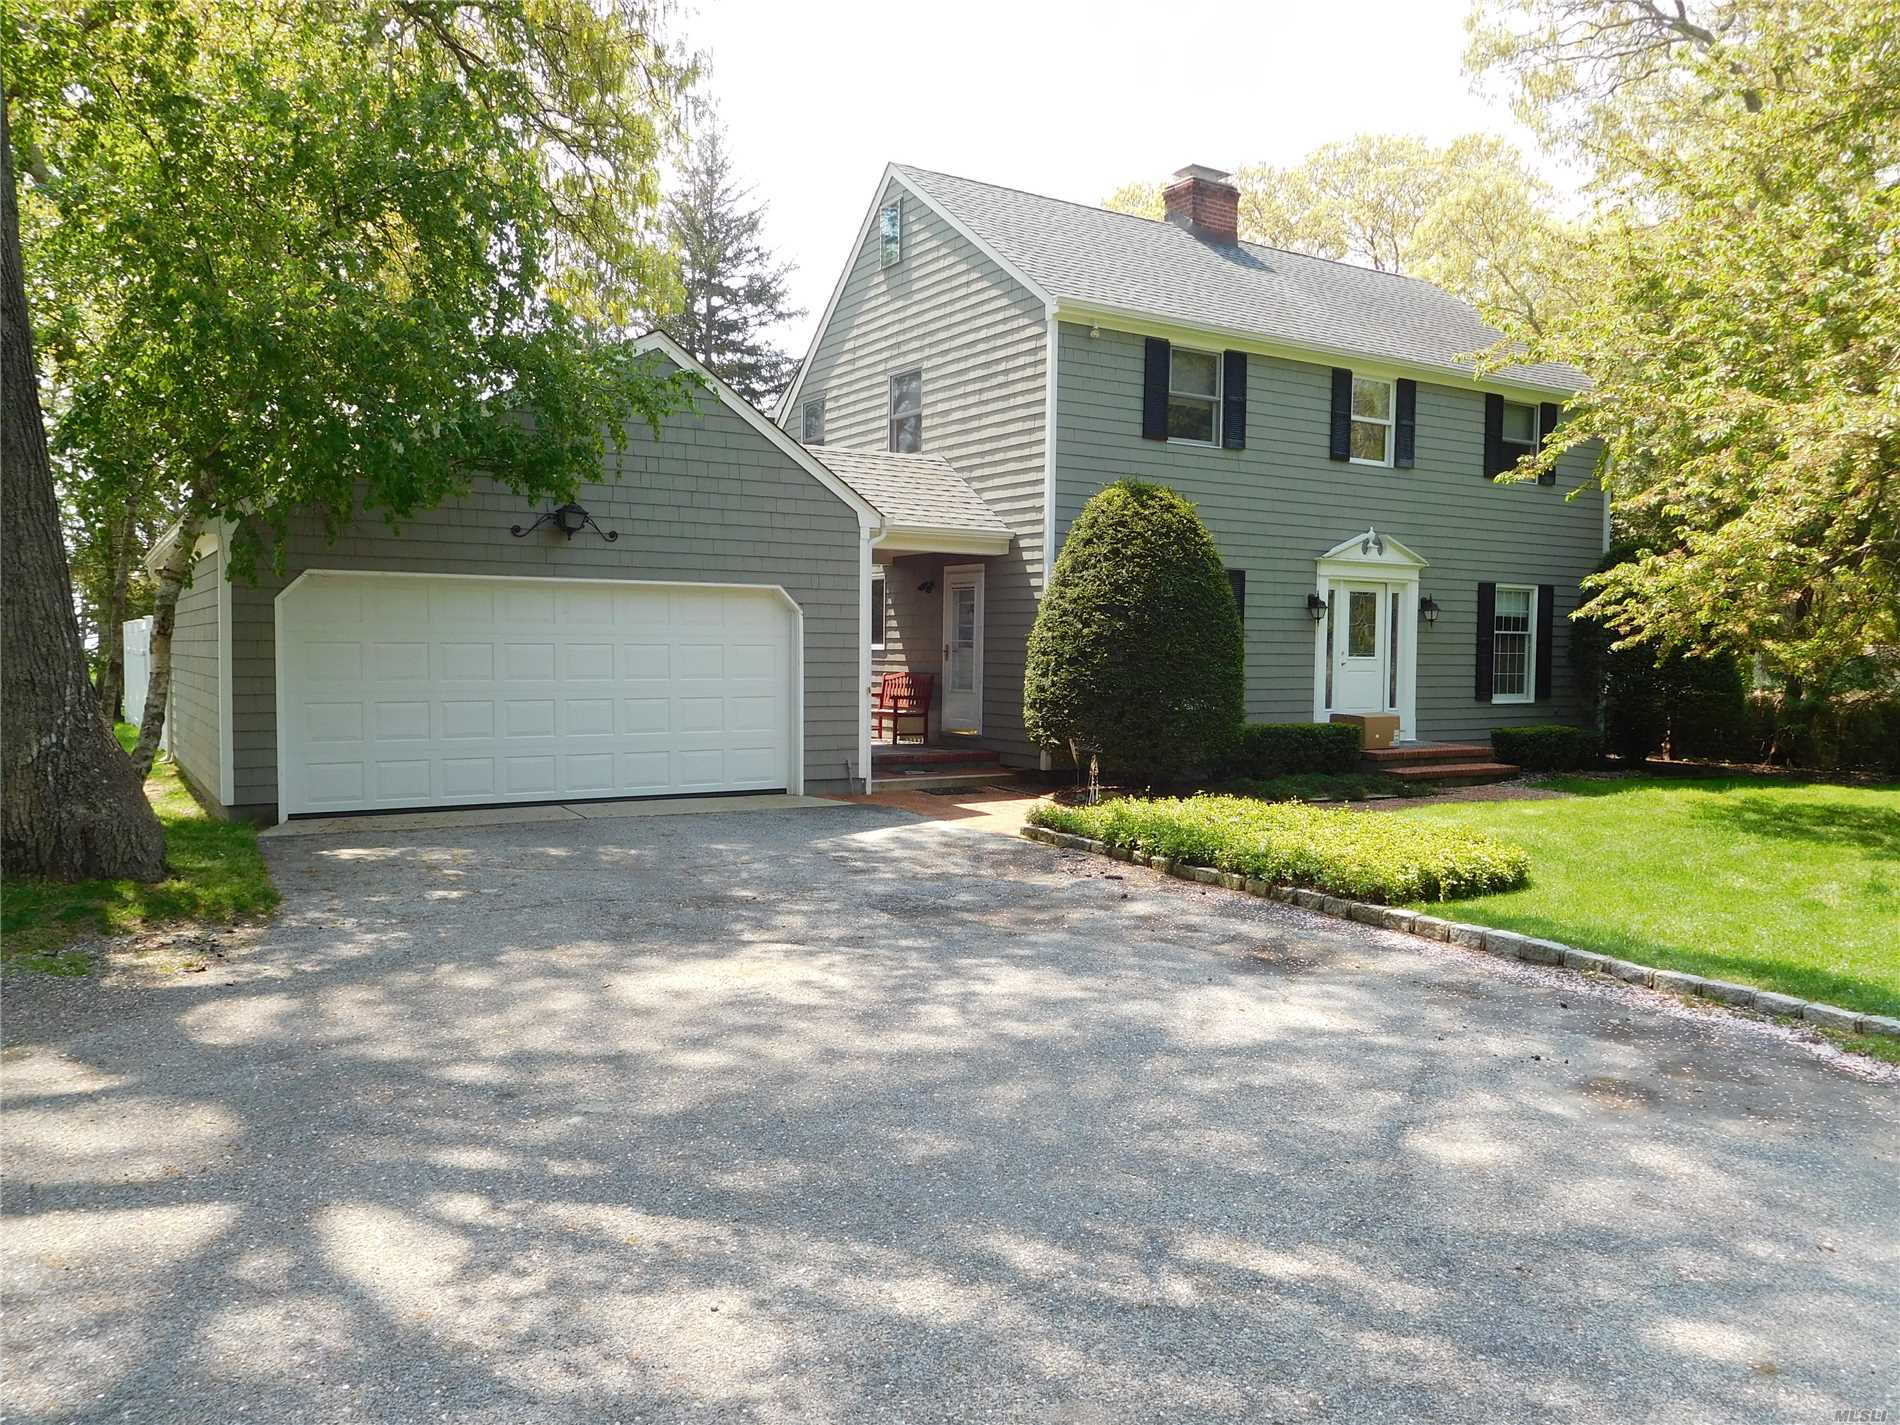 Bayview 2 Story. 200' To Deeded Sandy Beach. 4 Brs, 3.5 Baths, Living Room With Fireplace, Family Room With Fireplace, Kitchen & Formal Dining Room. Hw Floors And Cac. Full Basement, 2 Car Garage With Attic, Brick Patio And Stand Up Attic. New Heat, New Hot Water Heater, New Roof And Newly Painted Cedar Shake Exterior.